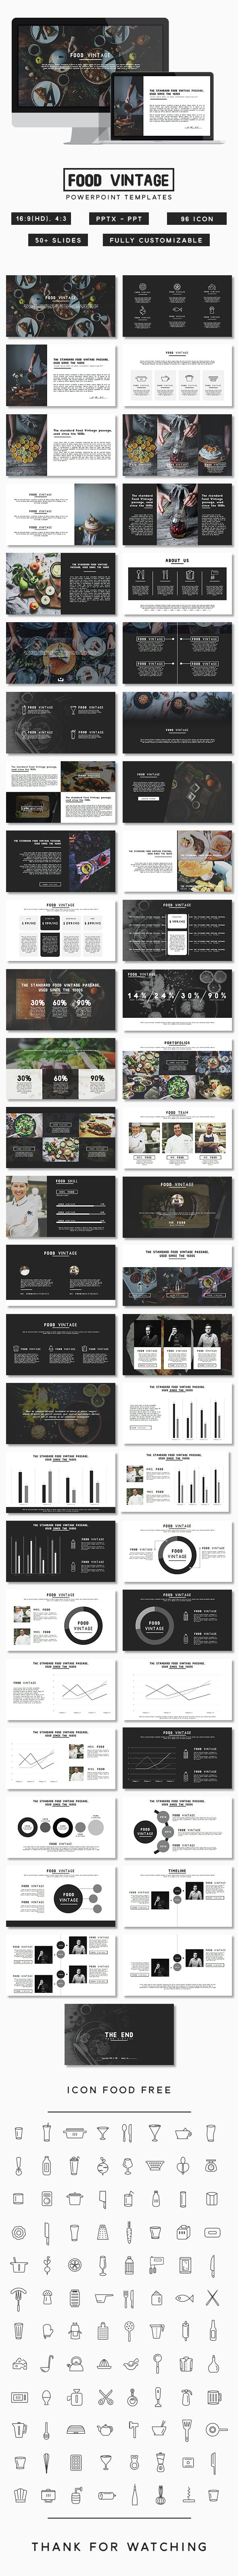 Food Vintage Presentation #corporate deck #customizable #data charts #distressed #domi #$12